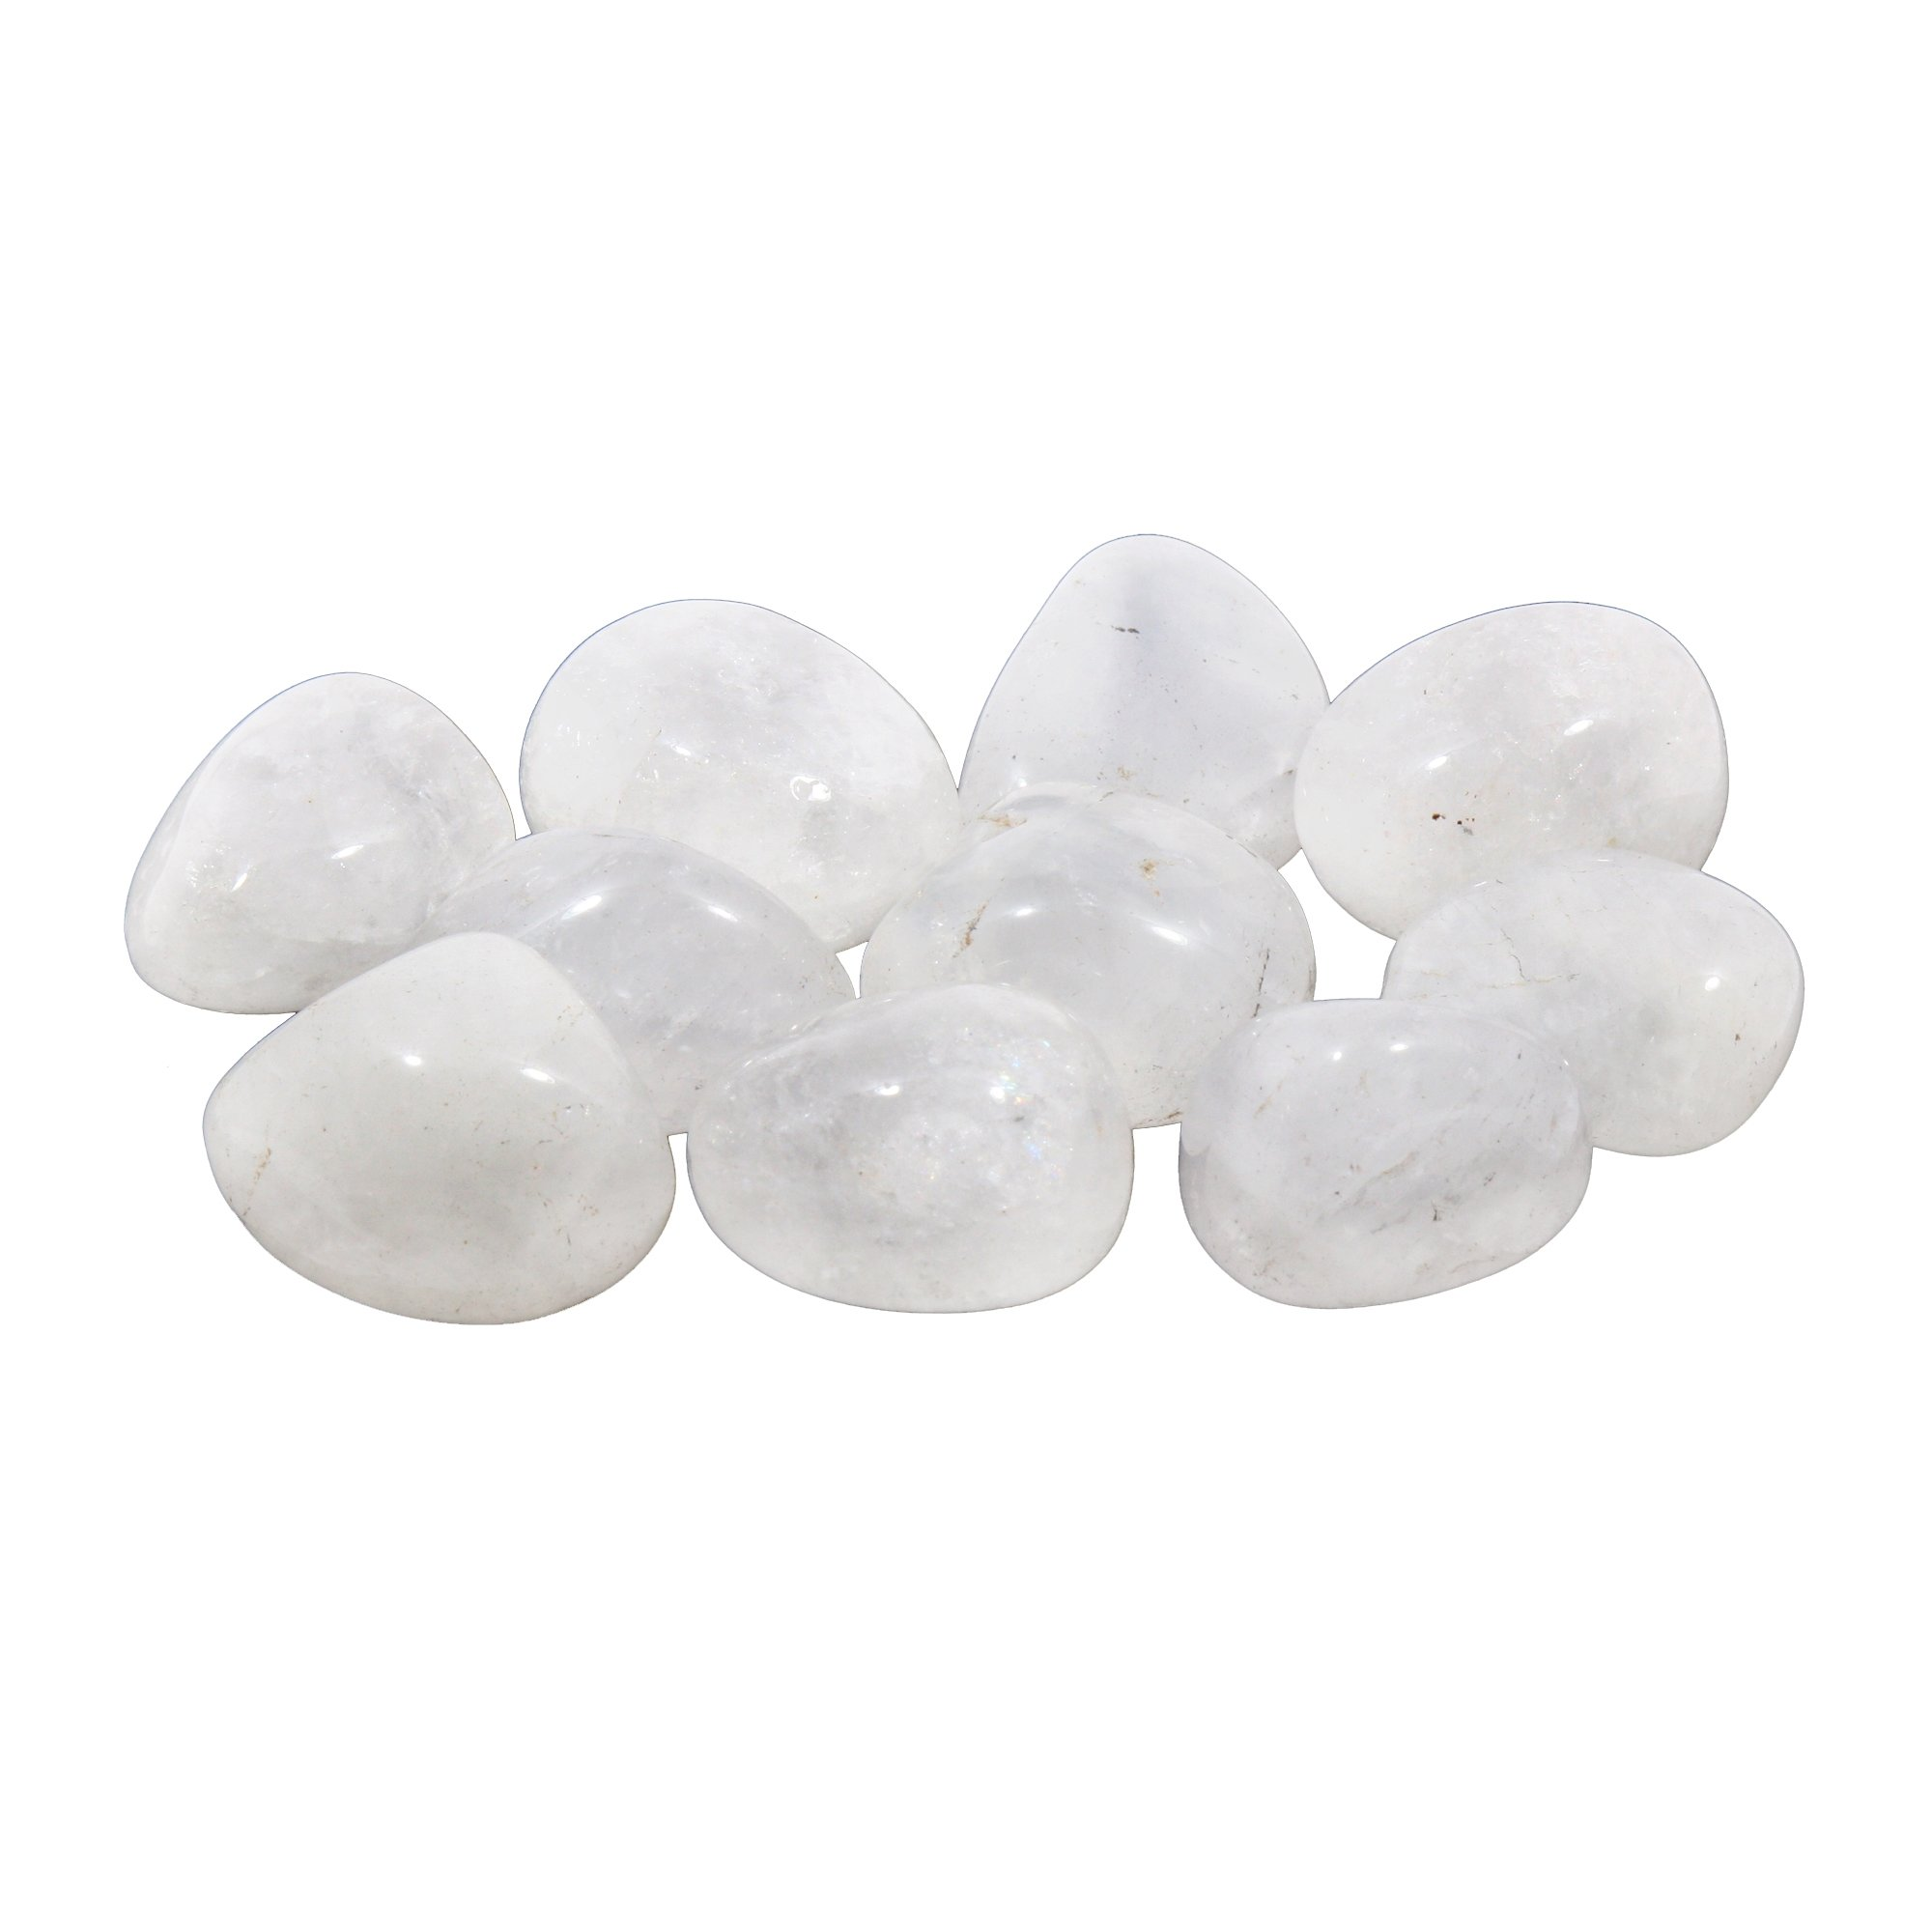 Milky Quartz Tumble Stone (20-25mm)